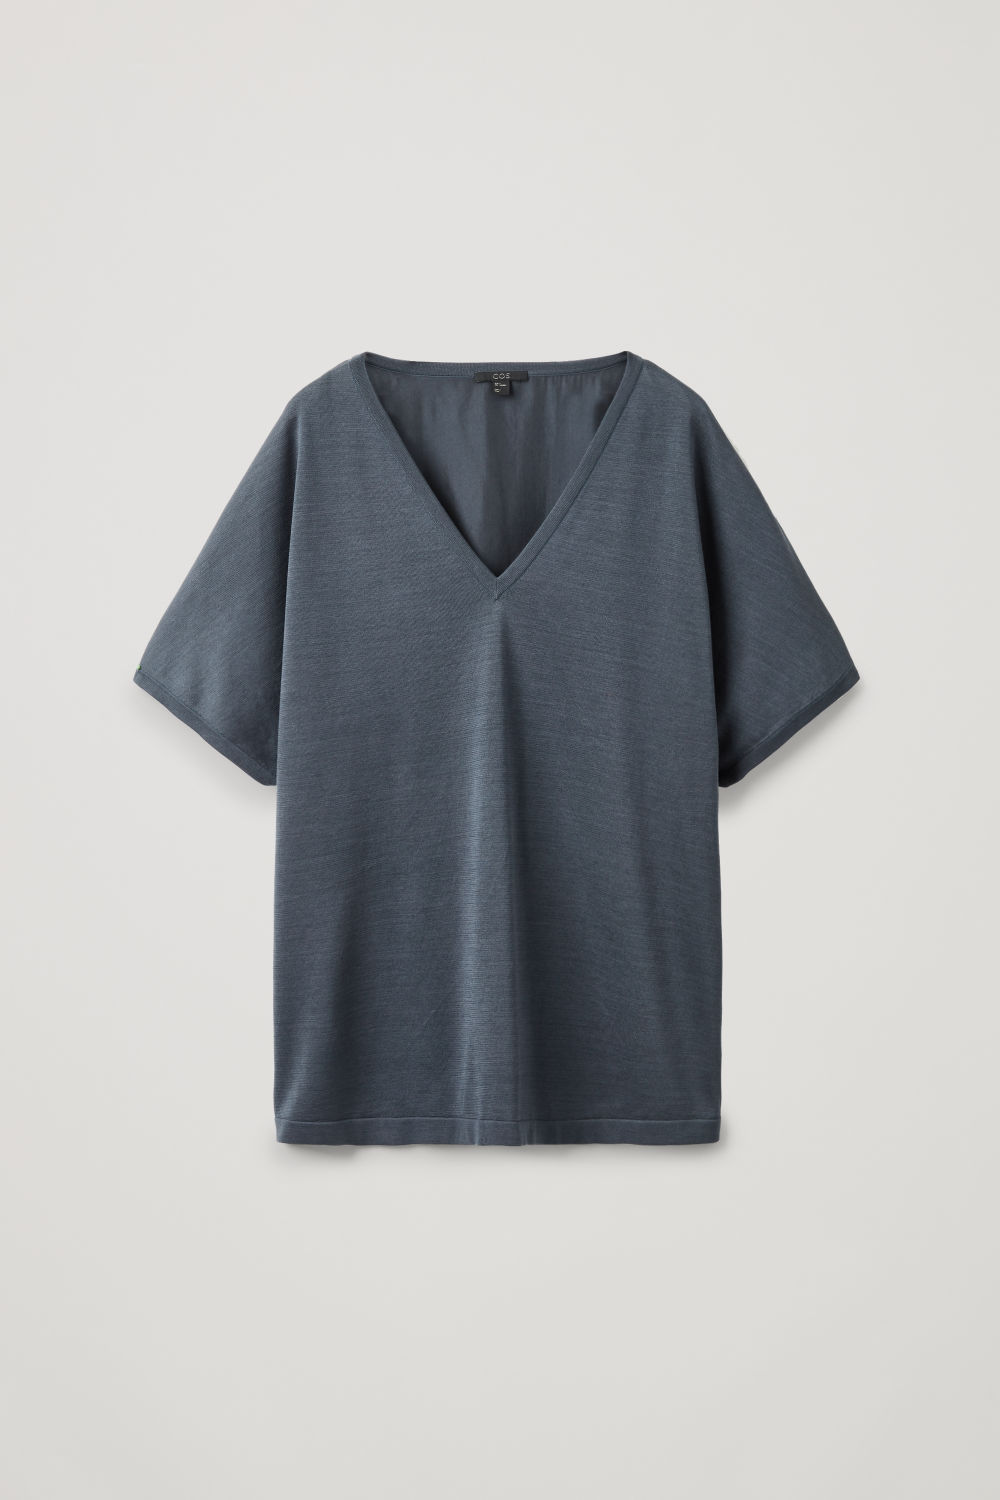 SILK-BACK V-NECK KNIT TOP